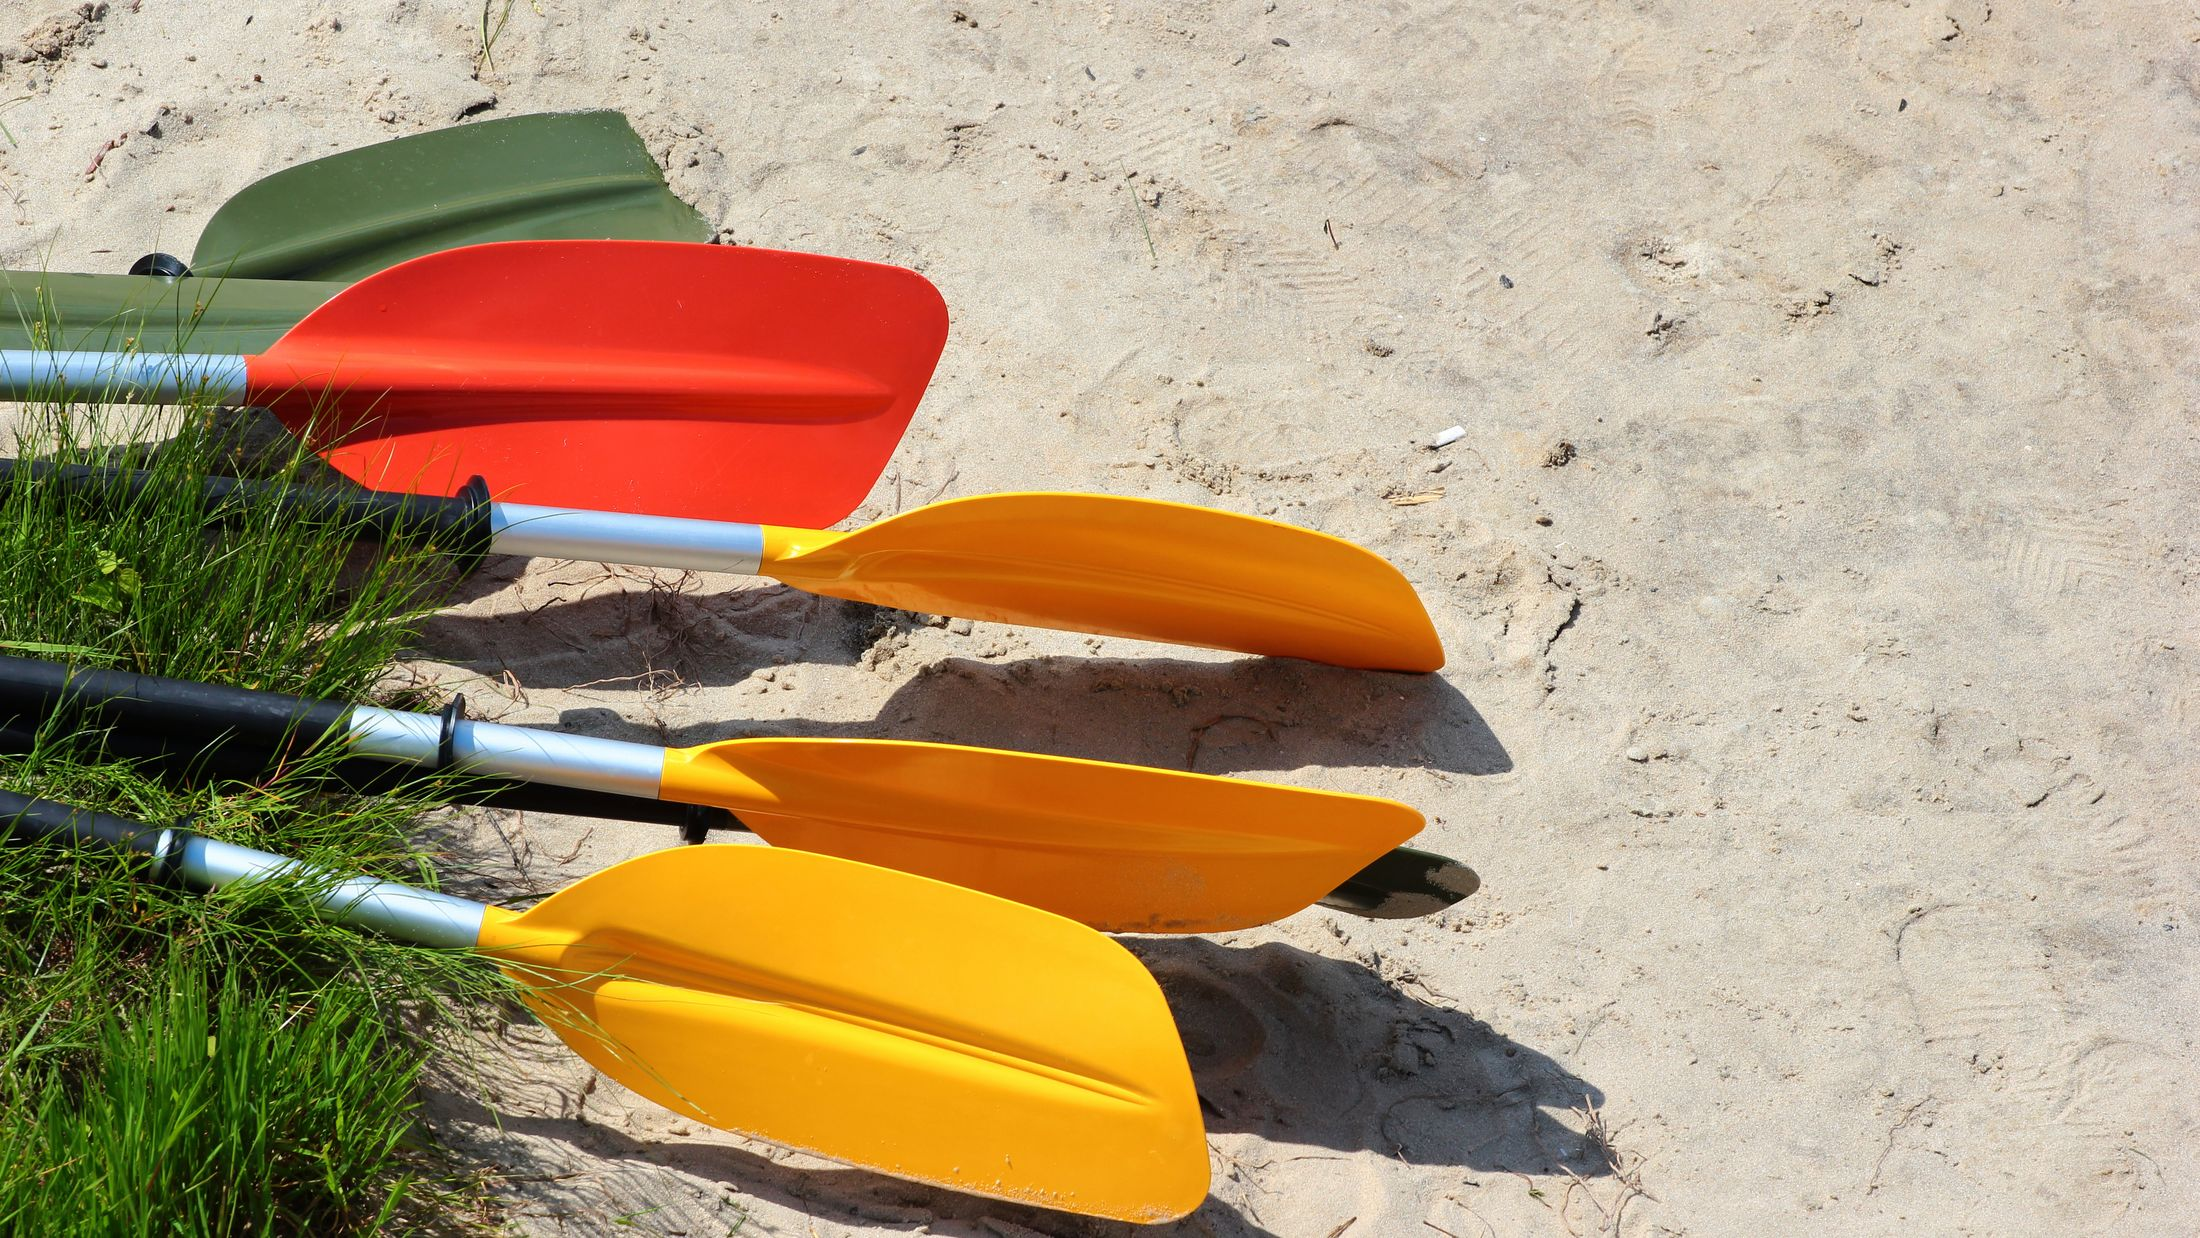 Colorful kayak paddles and oars on sandy beach; Shutterstock ID 425630623; PO: Sovereign